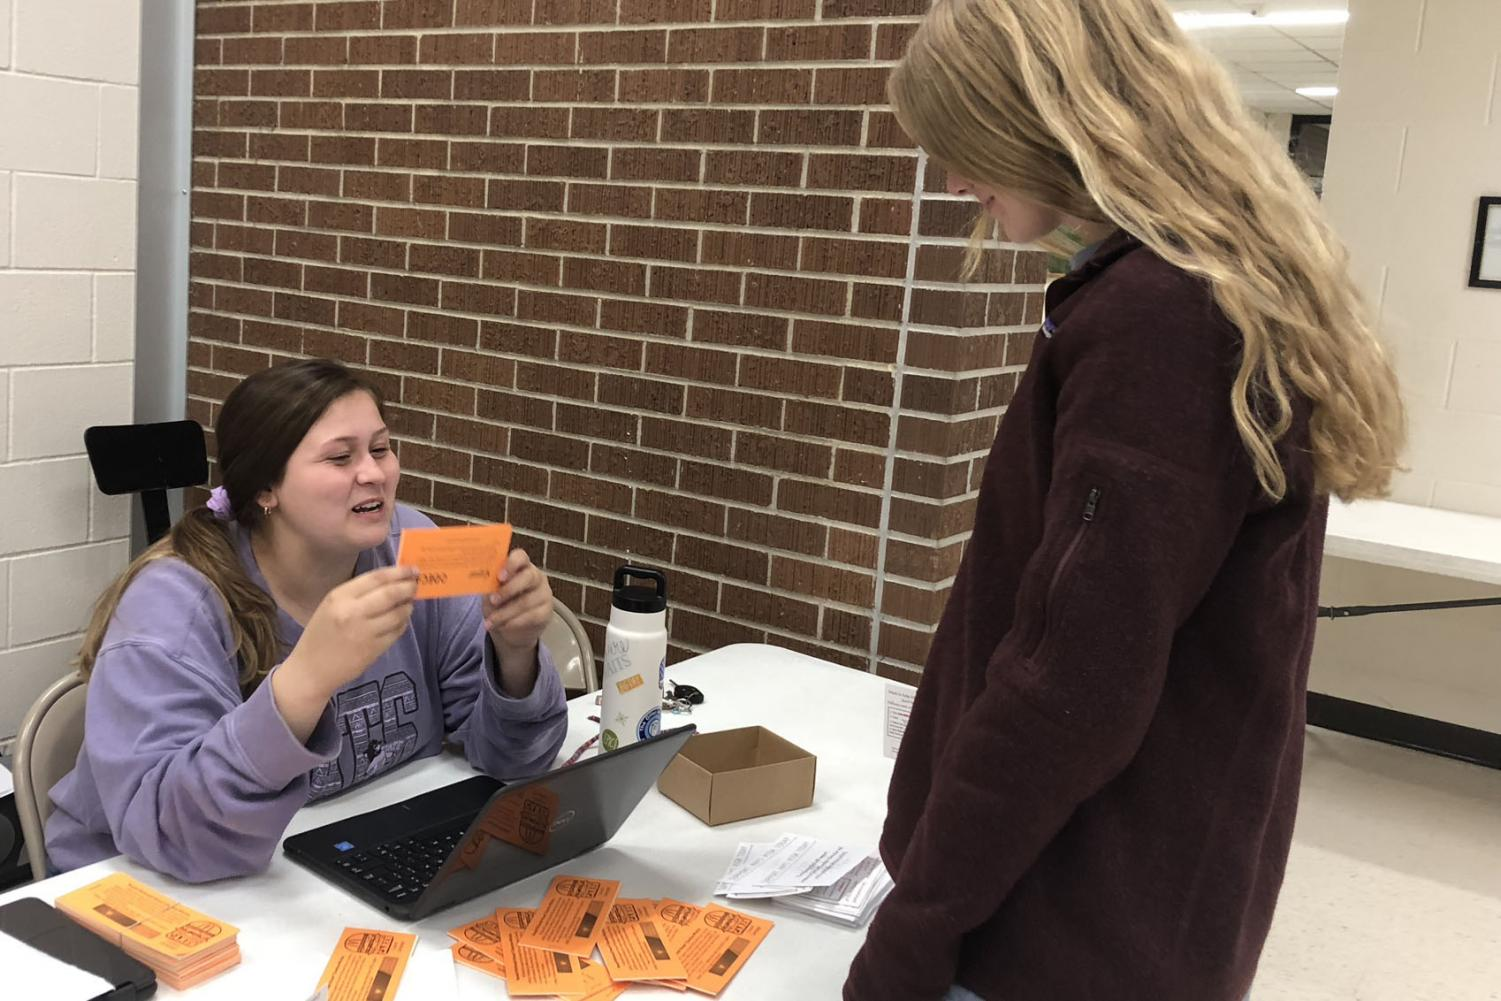 Senior Shyann Schumacher works to sell coupon books at the parent-teacher conferences on Nov. 29. The coupon books raise money for the Ronald McDonald House Charities which allow families with severely ill children to stay for low to no cost.